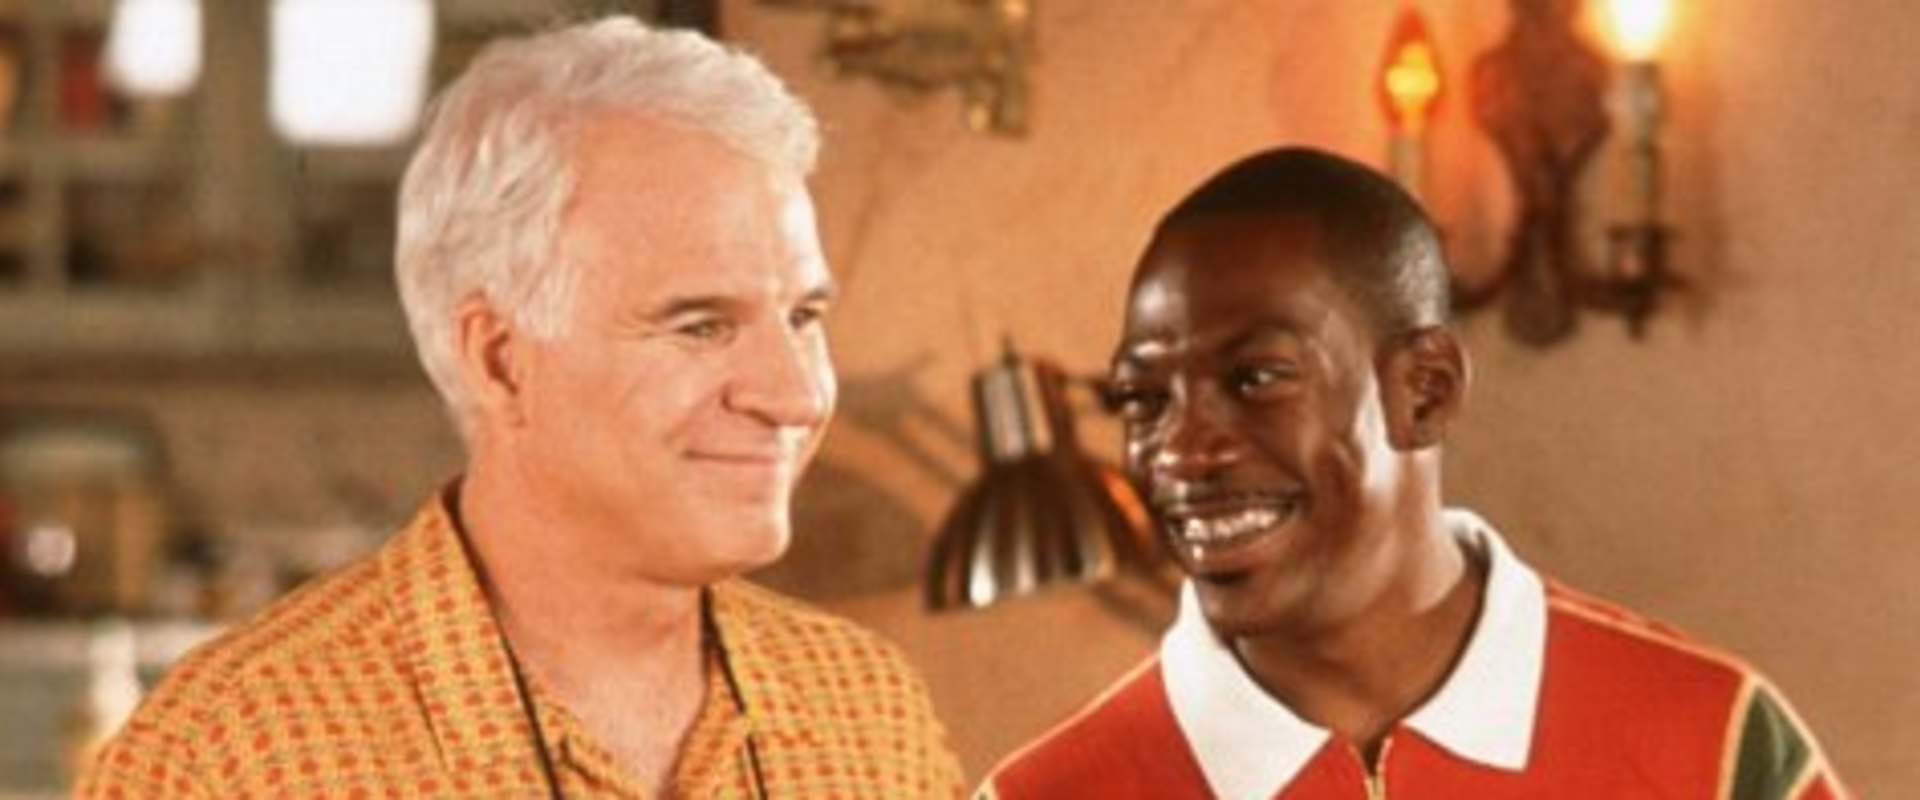 Bowfinger background 2